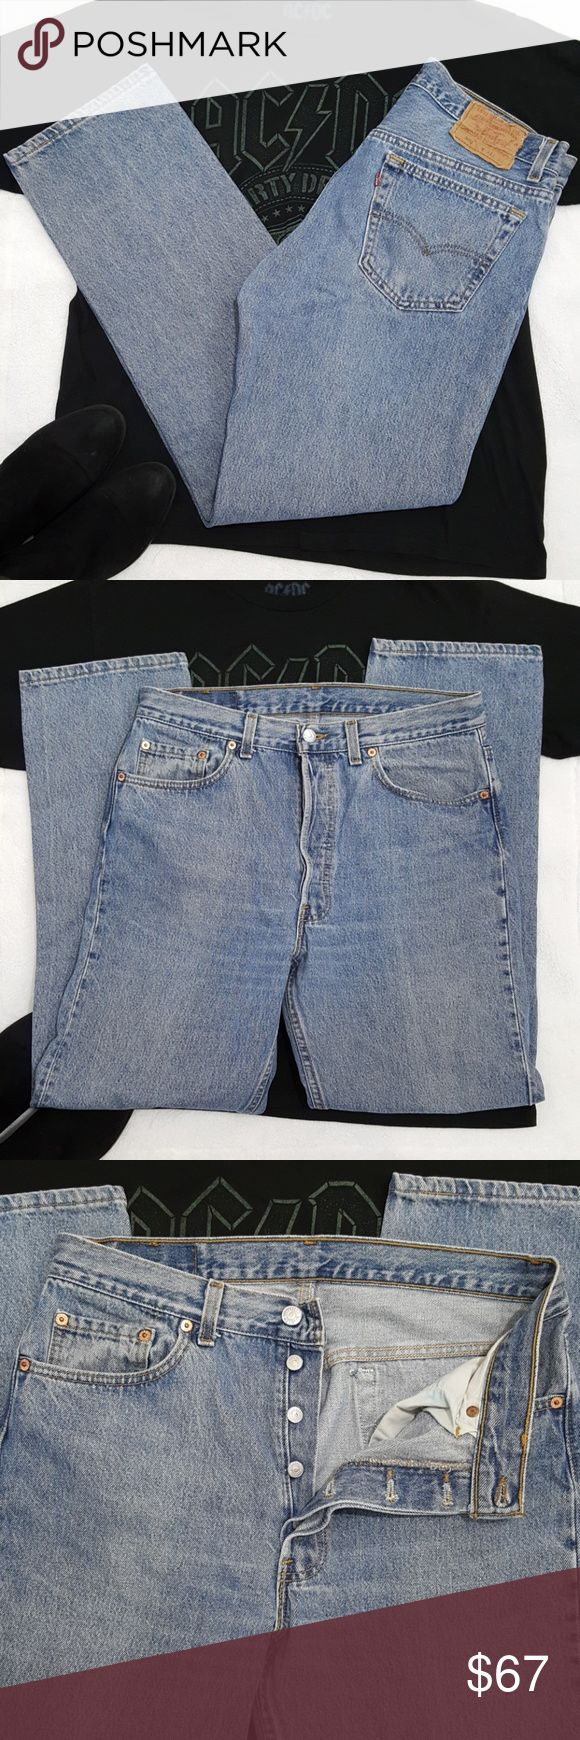 Vintage Levi's 501 Jeans 34x30 This is a size 34 contest mom jeans  Normal wear. No holes or tears.   Bundle & save. Zara suede heeled ankle boots &ACDC tee in photo are also available.  2397 Levi's Jeans Straight Leg